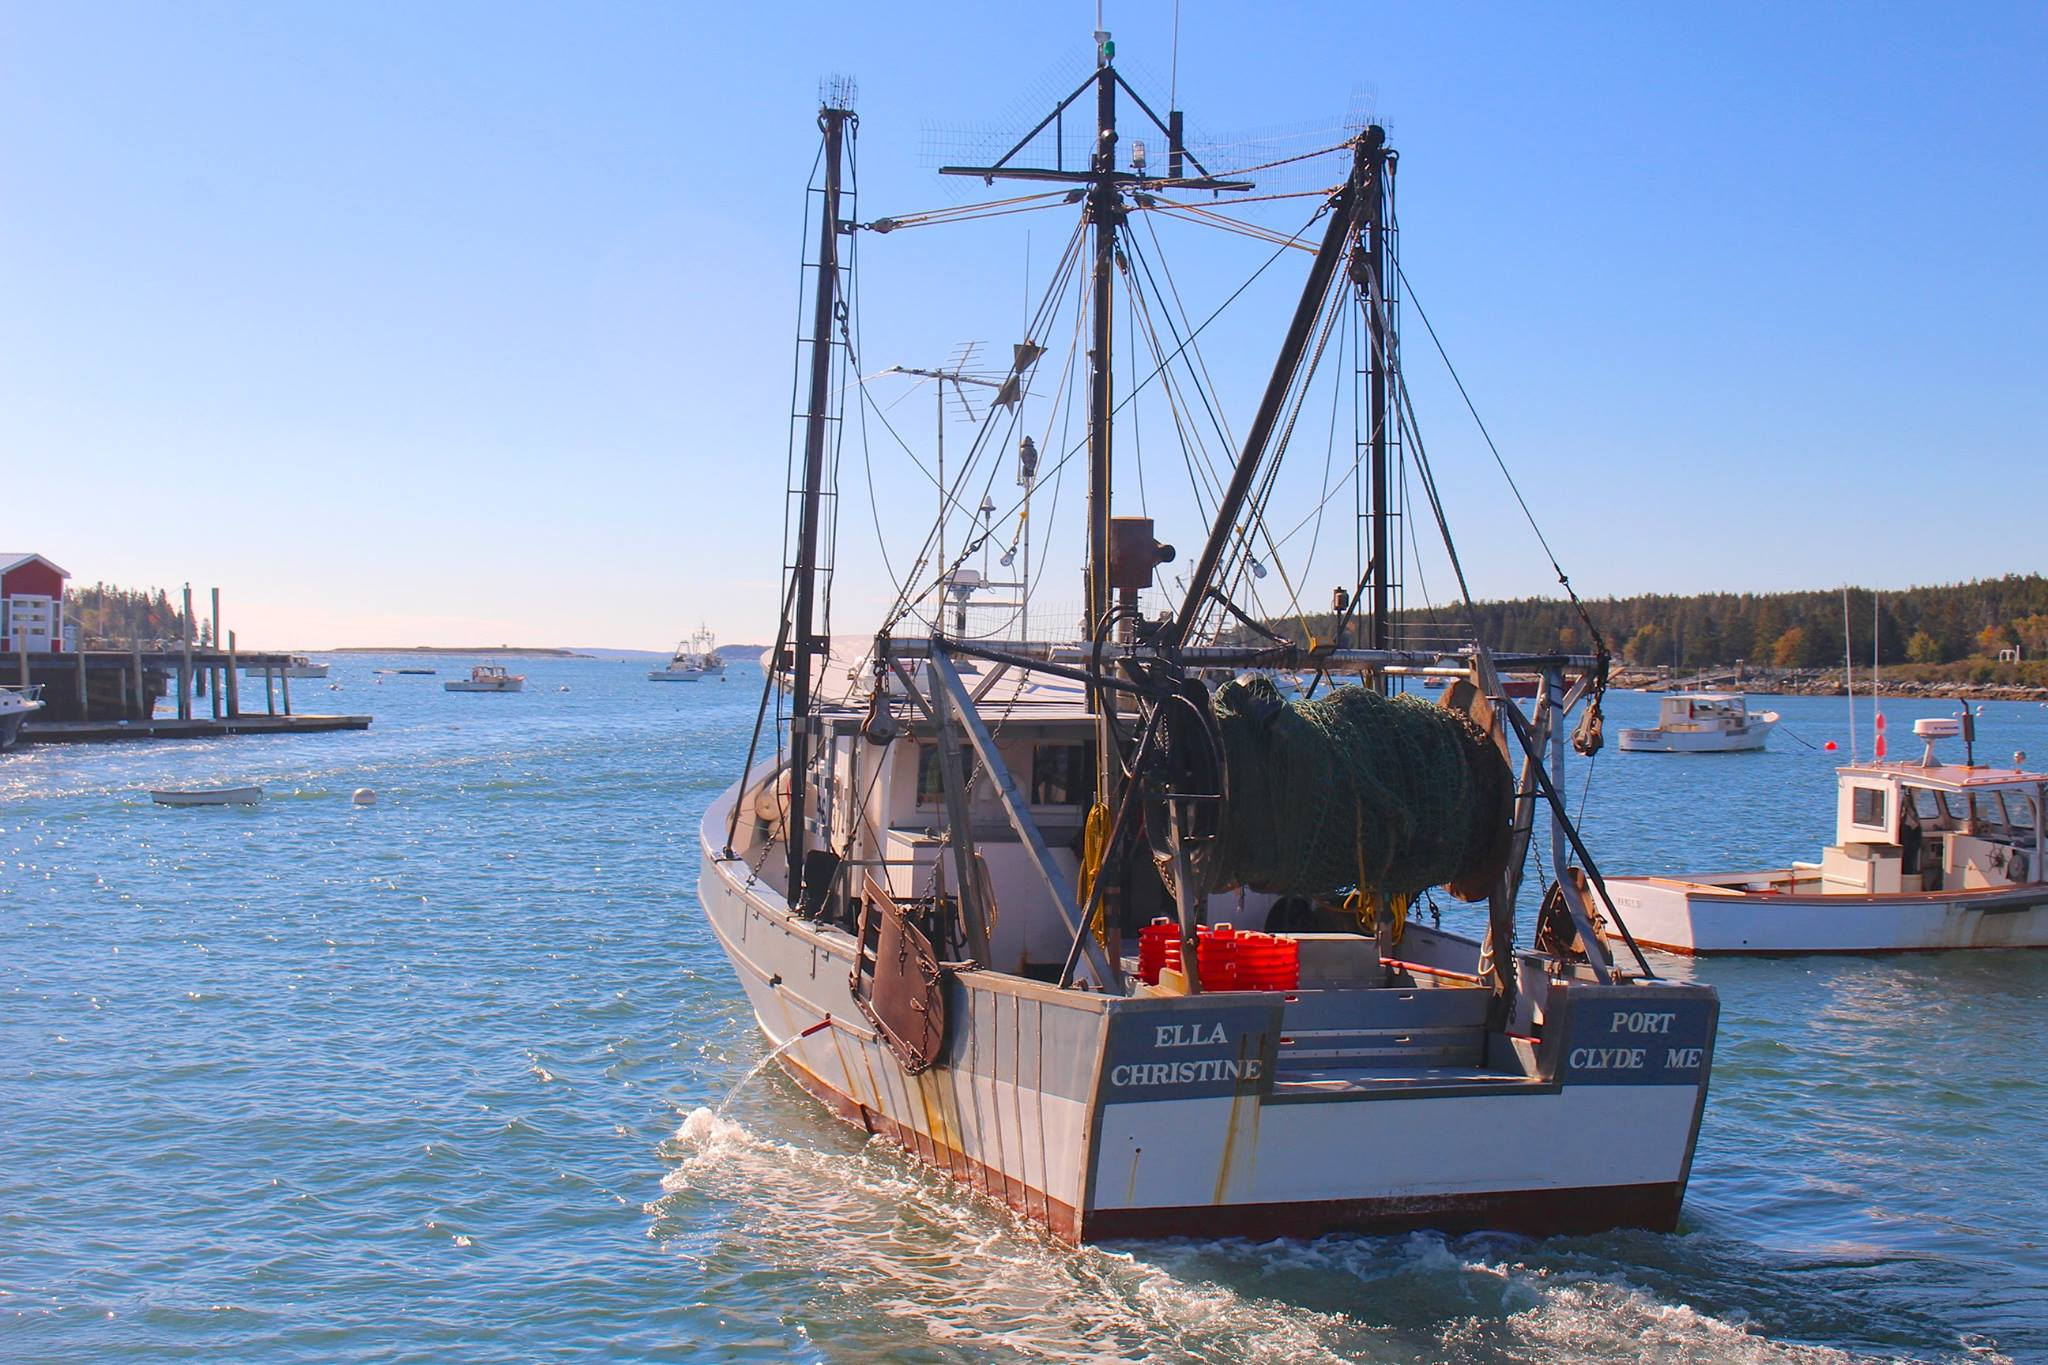 Electronic Monitoring in the New England Groundfish Fishery: Lessons Learned From a Collaborative Research Project (2013-2015) (Photo courtesy of Chenie Prudhome)